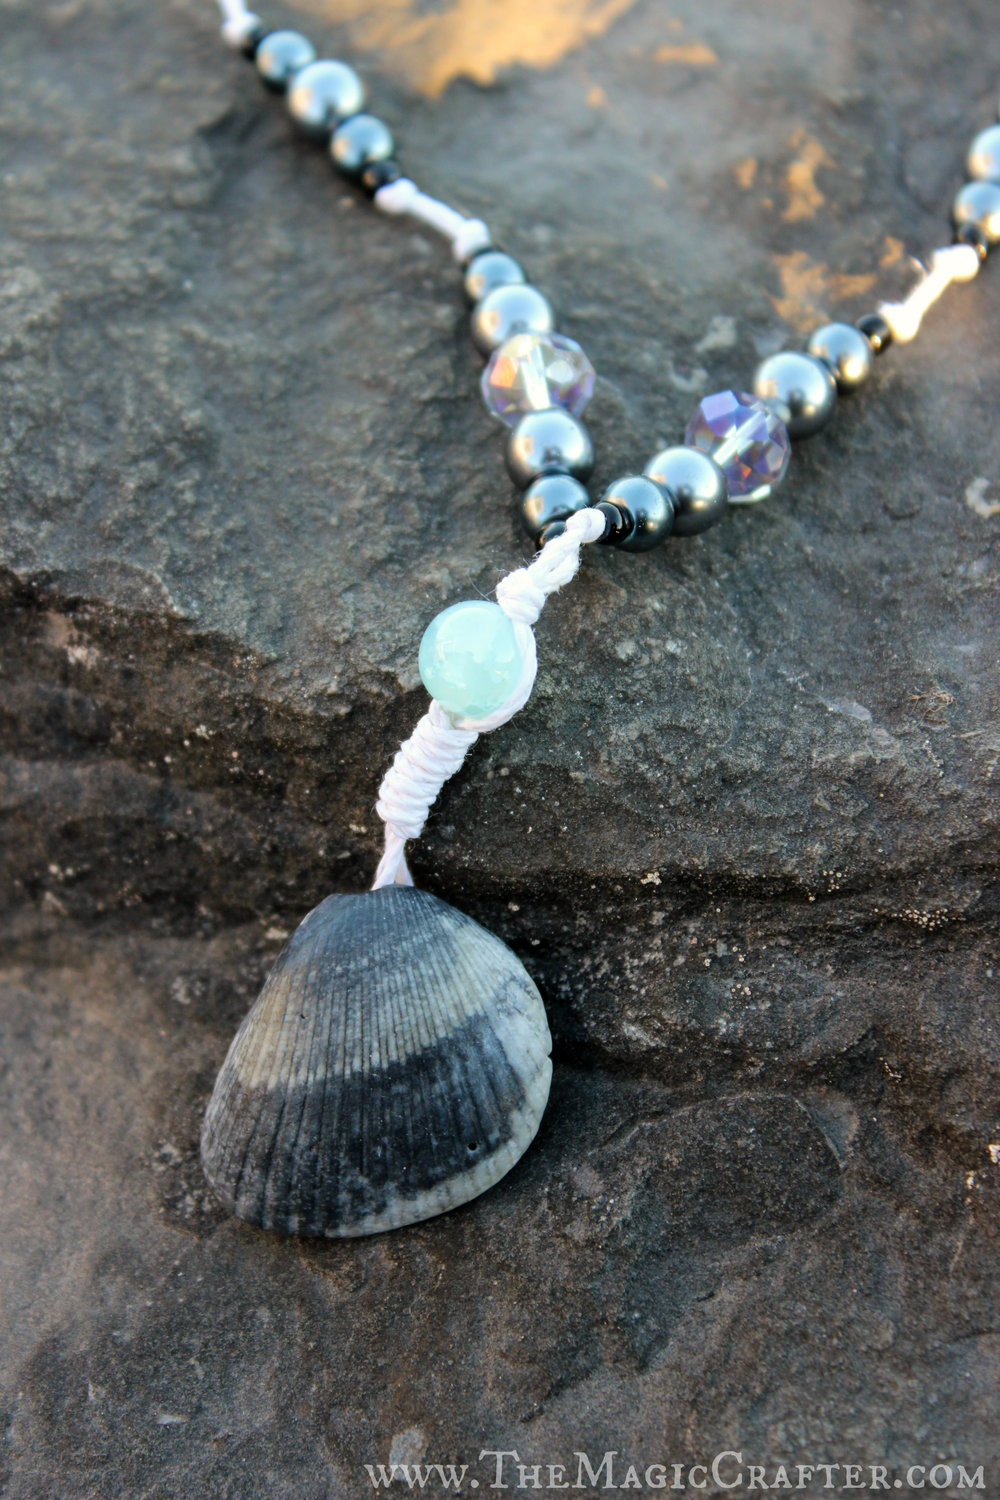 Just like the other one, this sea shell necklace is reversible too! I really love the color of this shell. :)